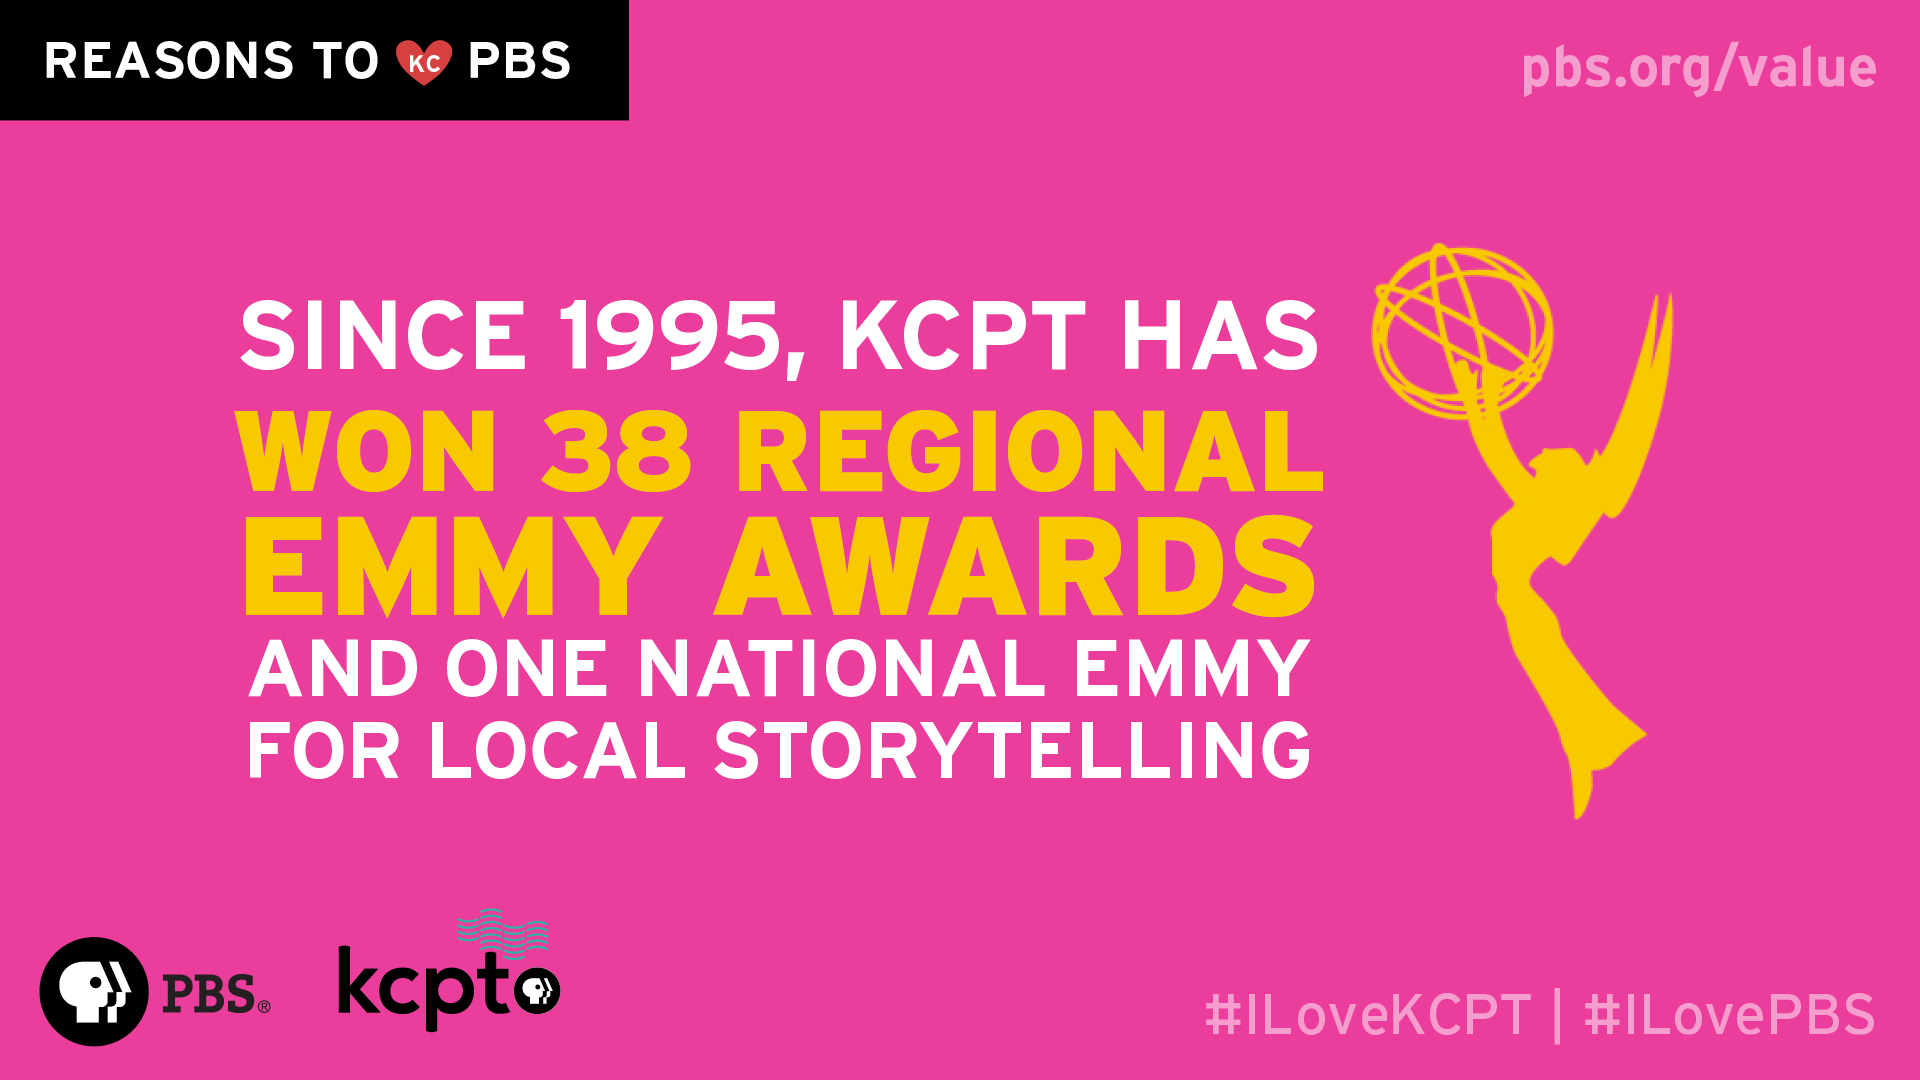 Since 1995, KCPT has won 38 regional EMMY Awards and one national EMMY for local storytelling.